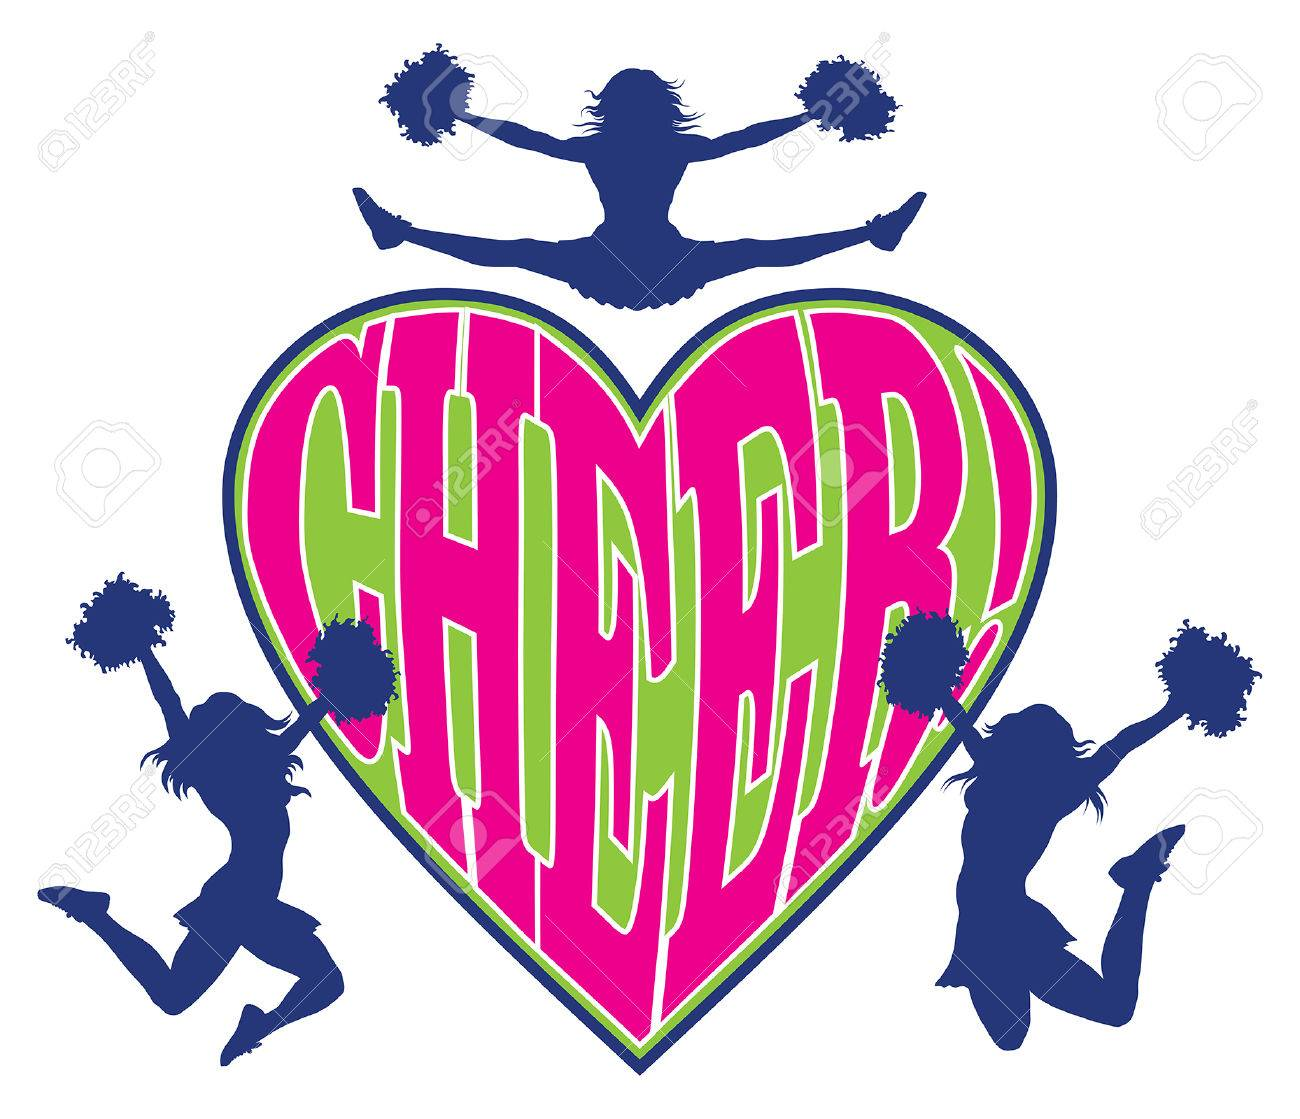 hight resolution of cheer heart is an illustration of a cheerleader design which includes three cheerleaders and the word